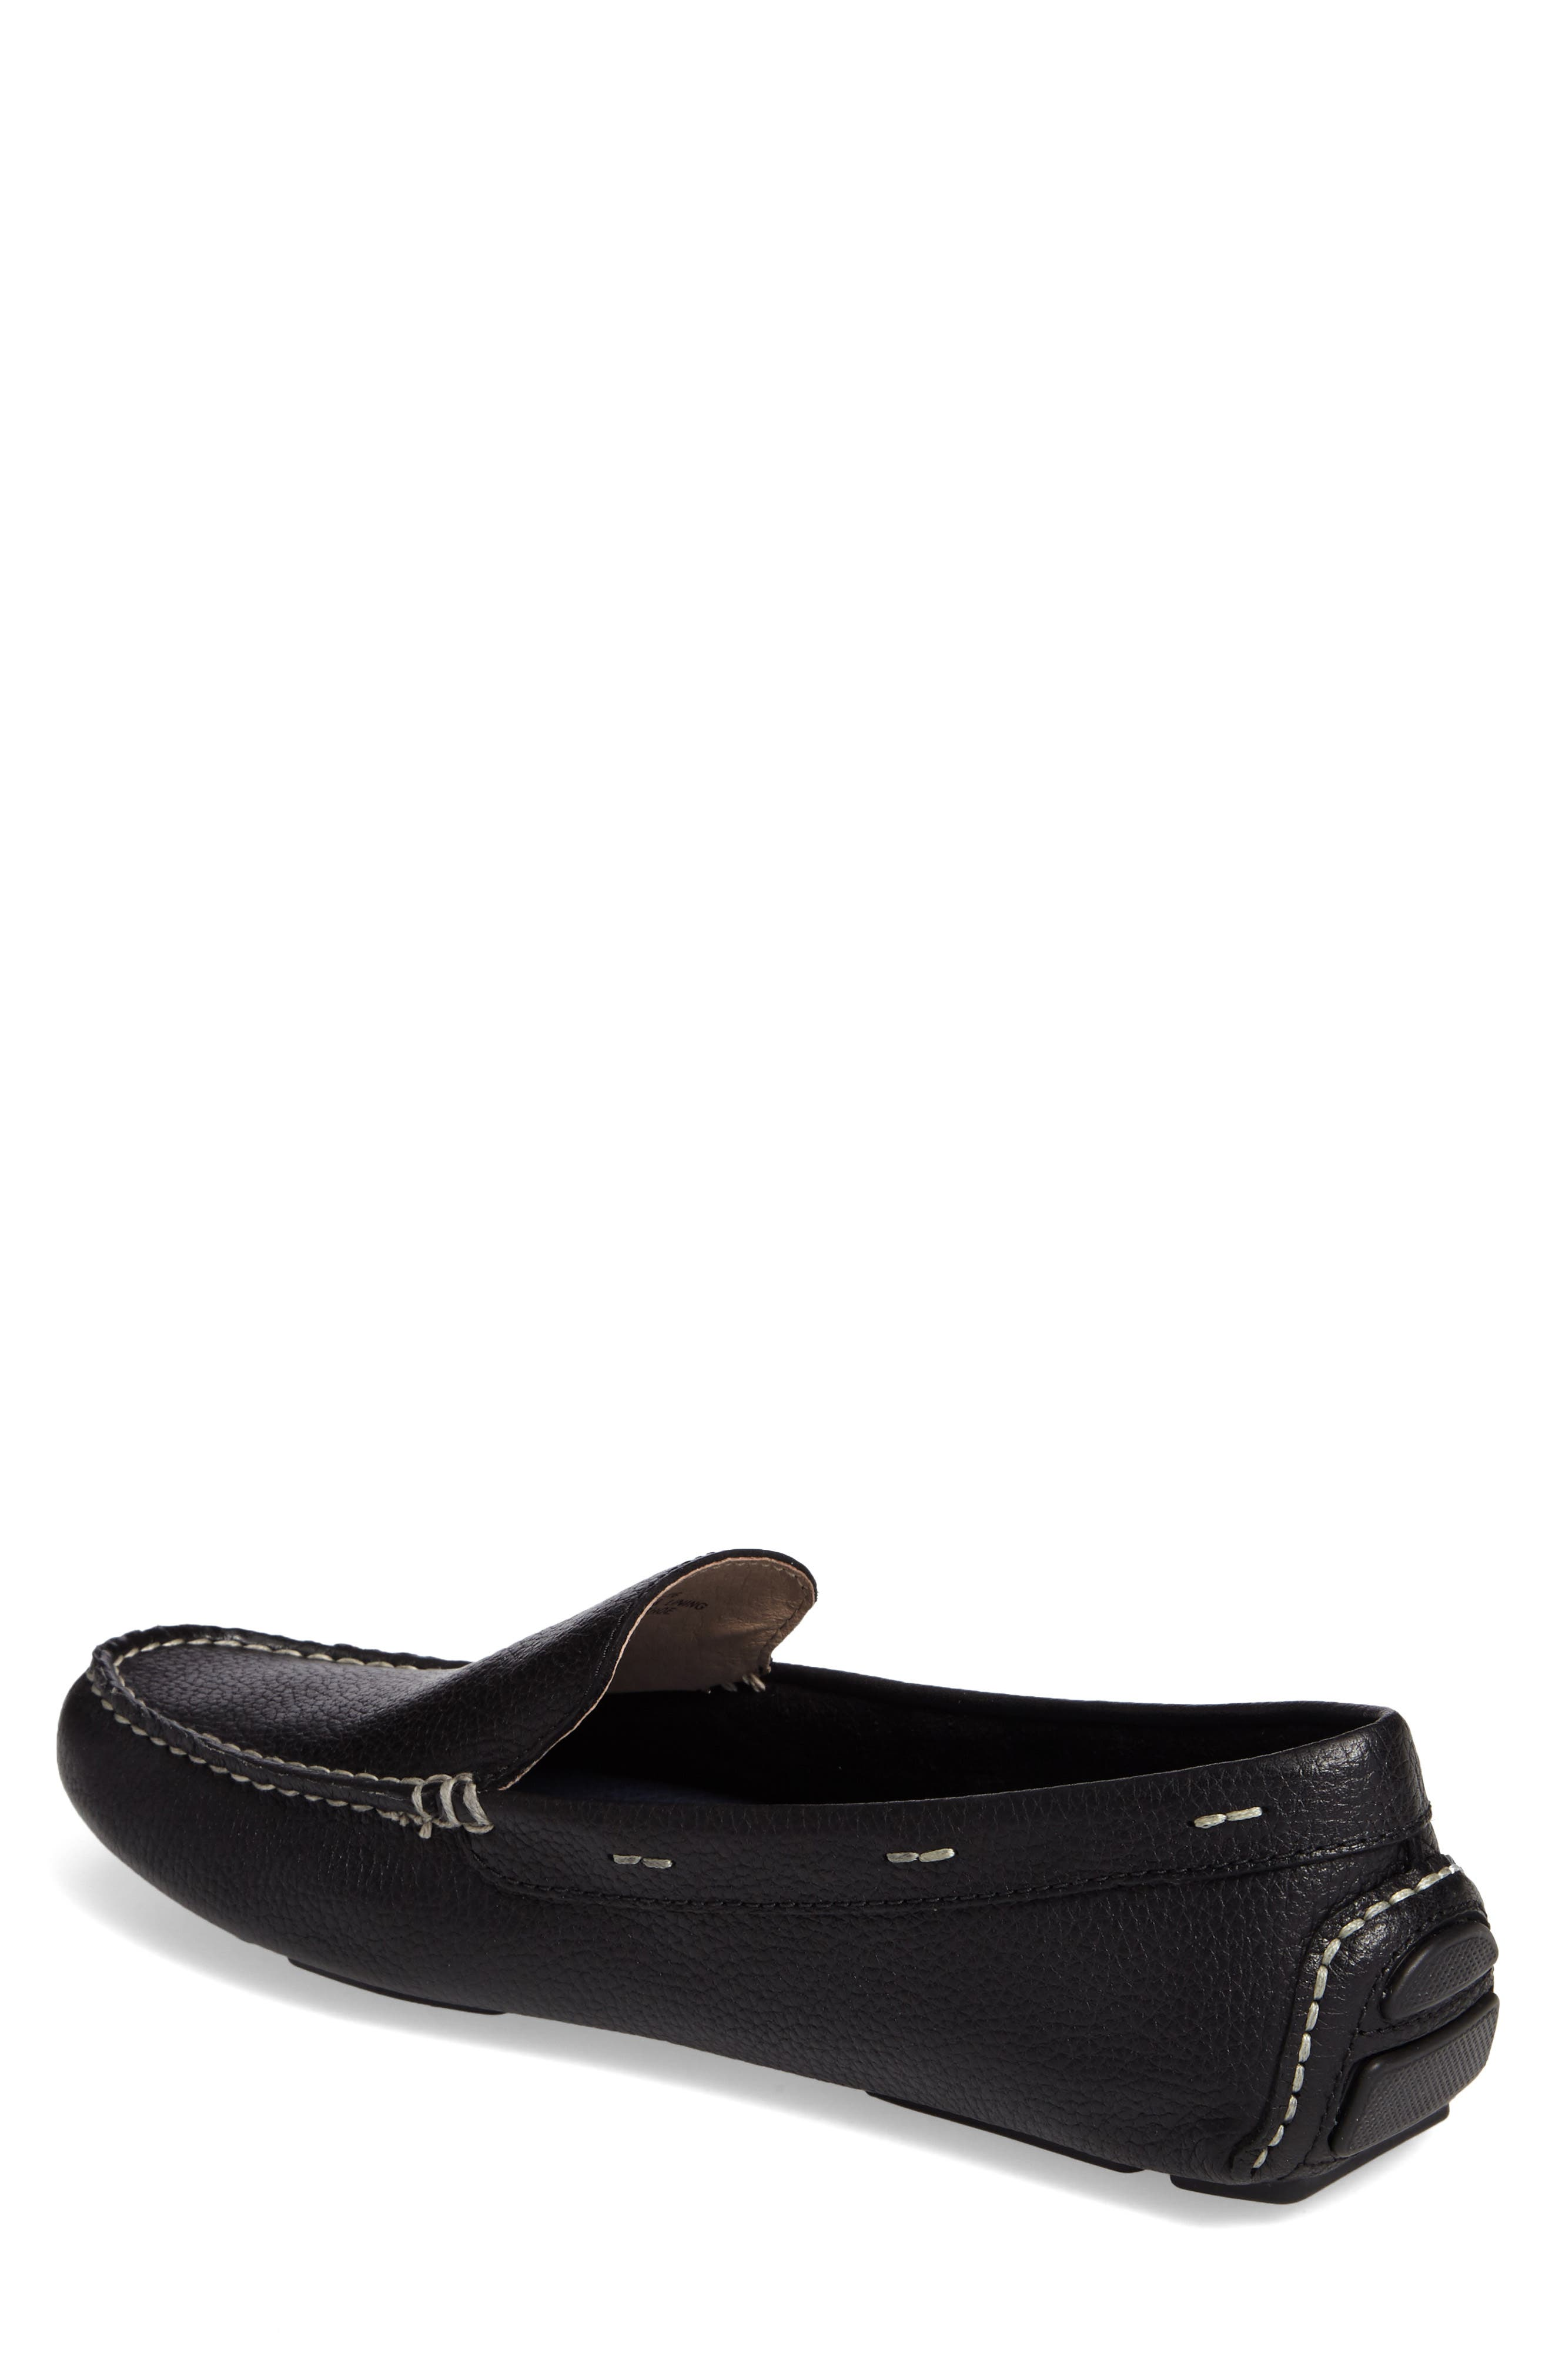 Pagota Driving Loafer,                             Alternate thumbnail 2, color,                             BLACK LEATHER